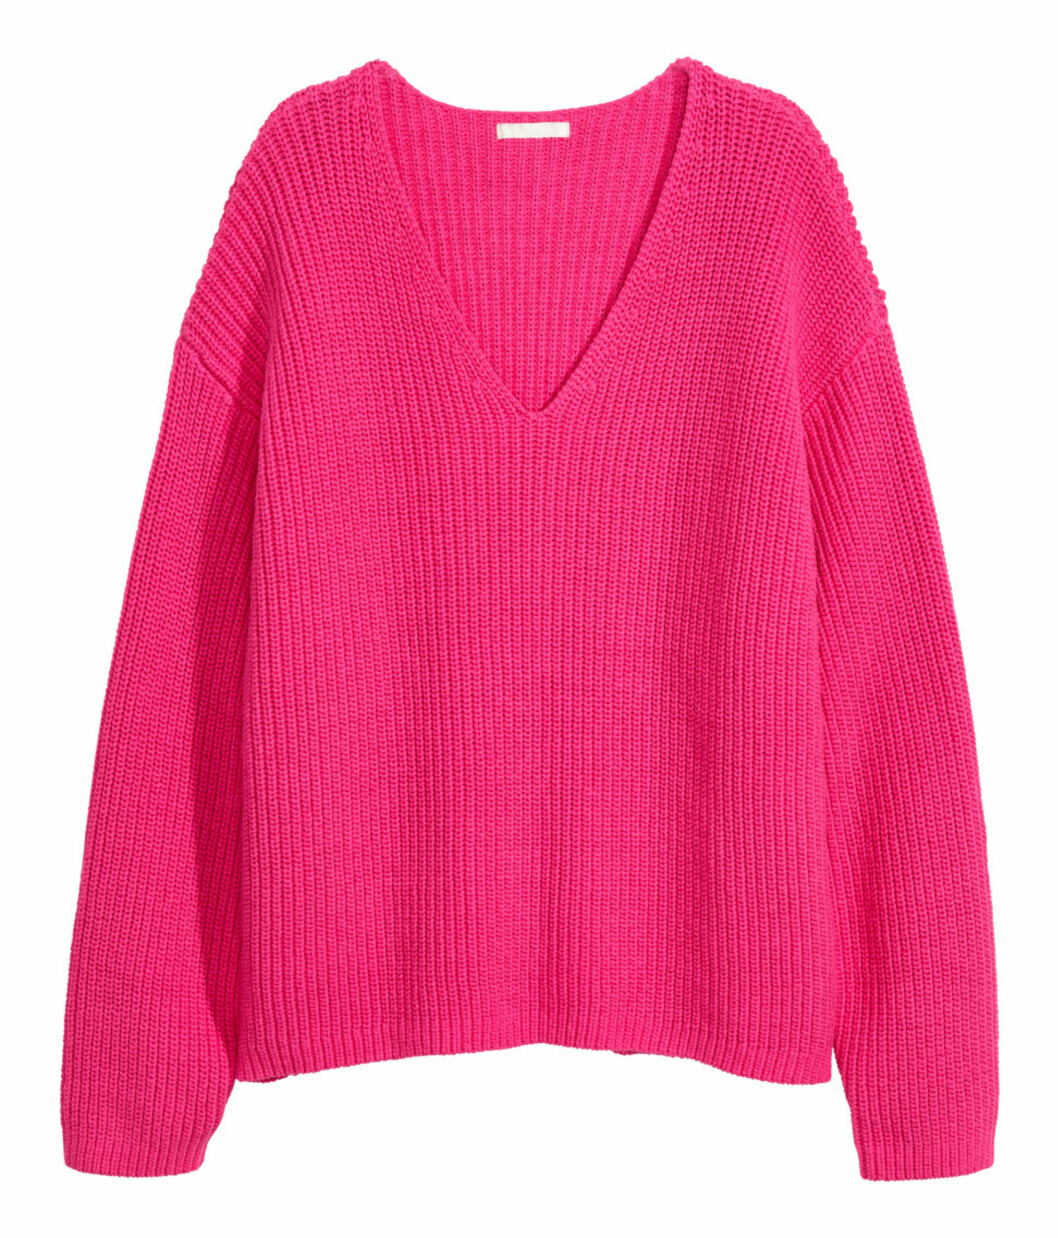 <strong>Genser fra H&M | kr 399 | http:</strong>//www.hm.com/no/product/74518?article=74518-A